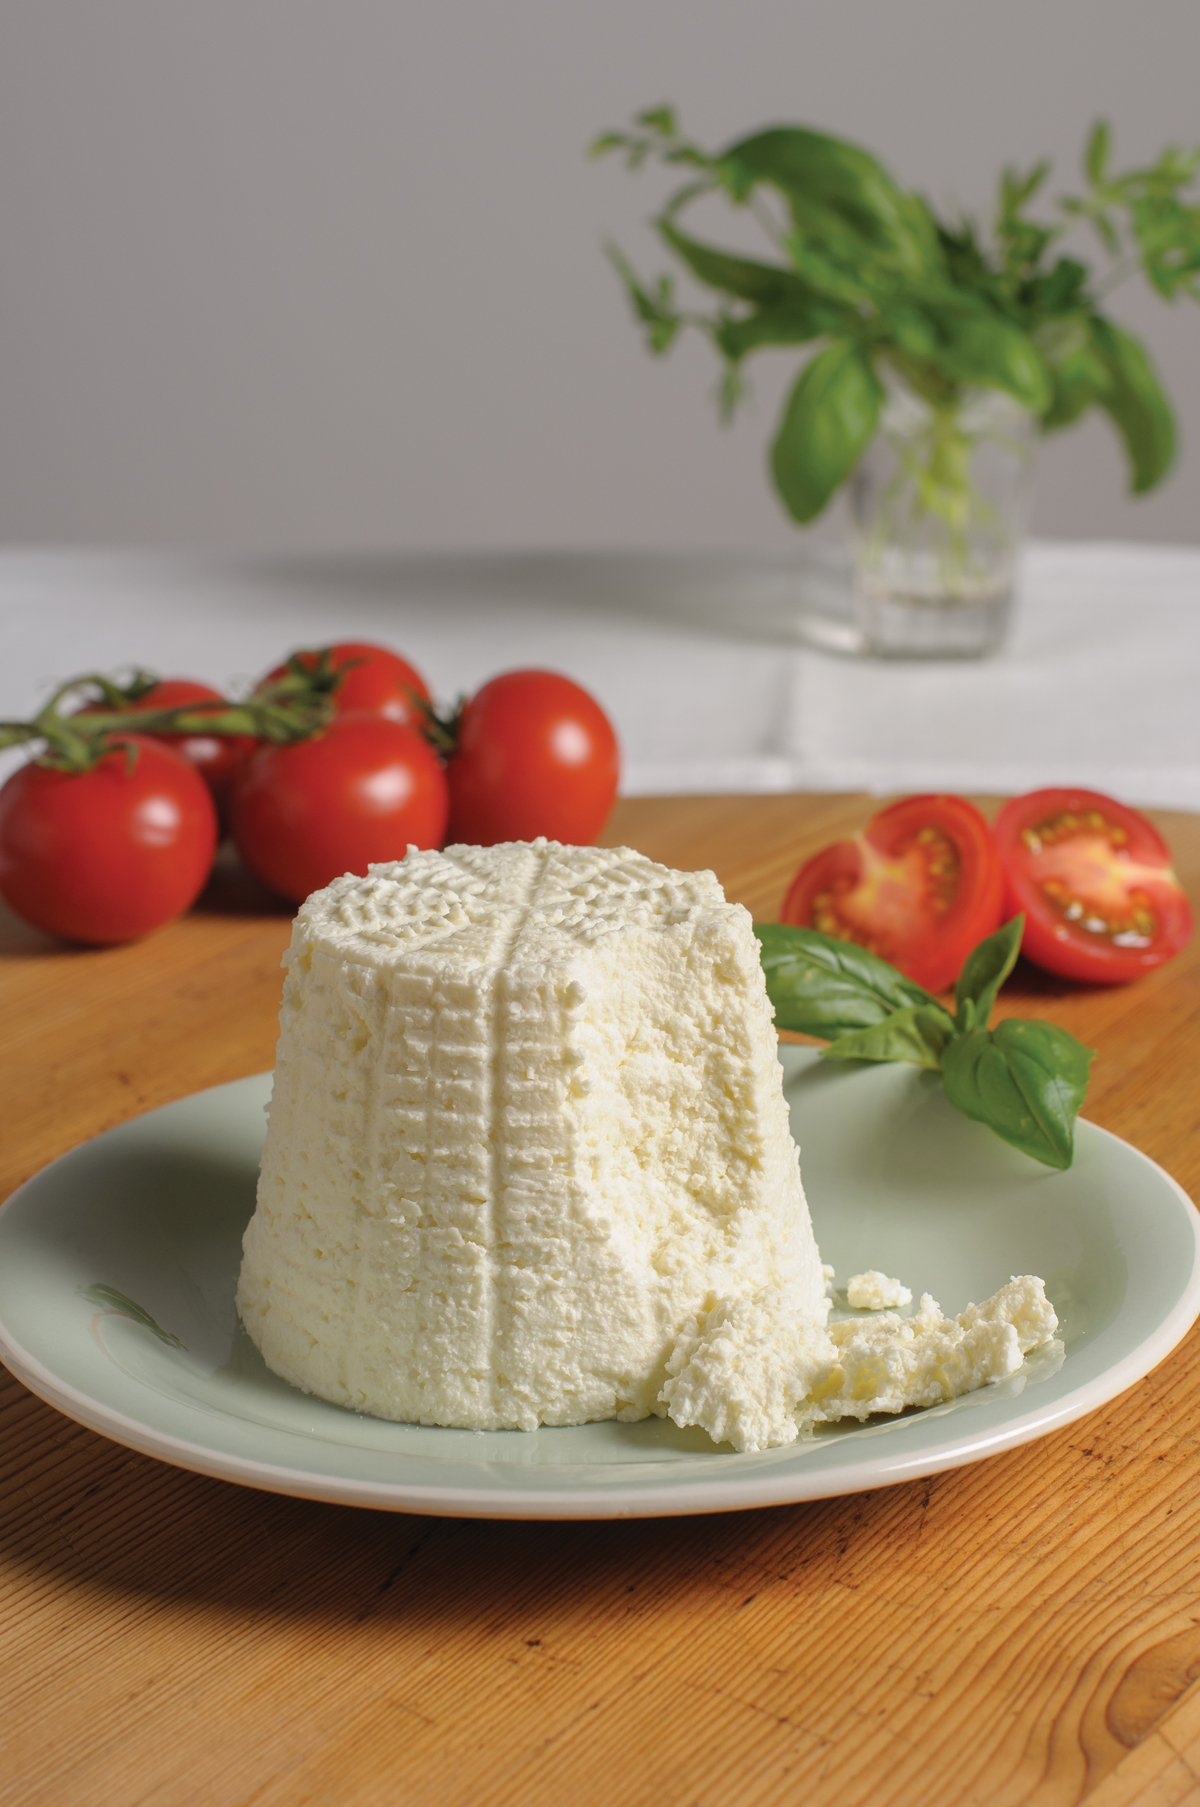 Beginners Italian Cheese Making Class